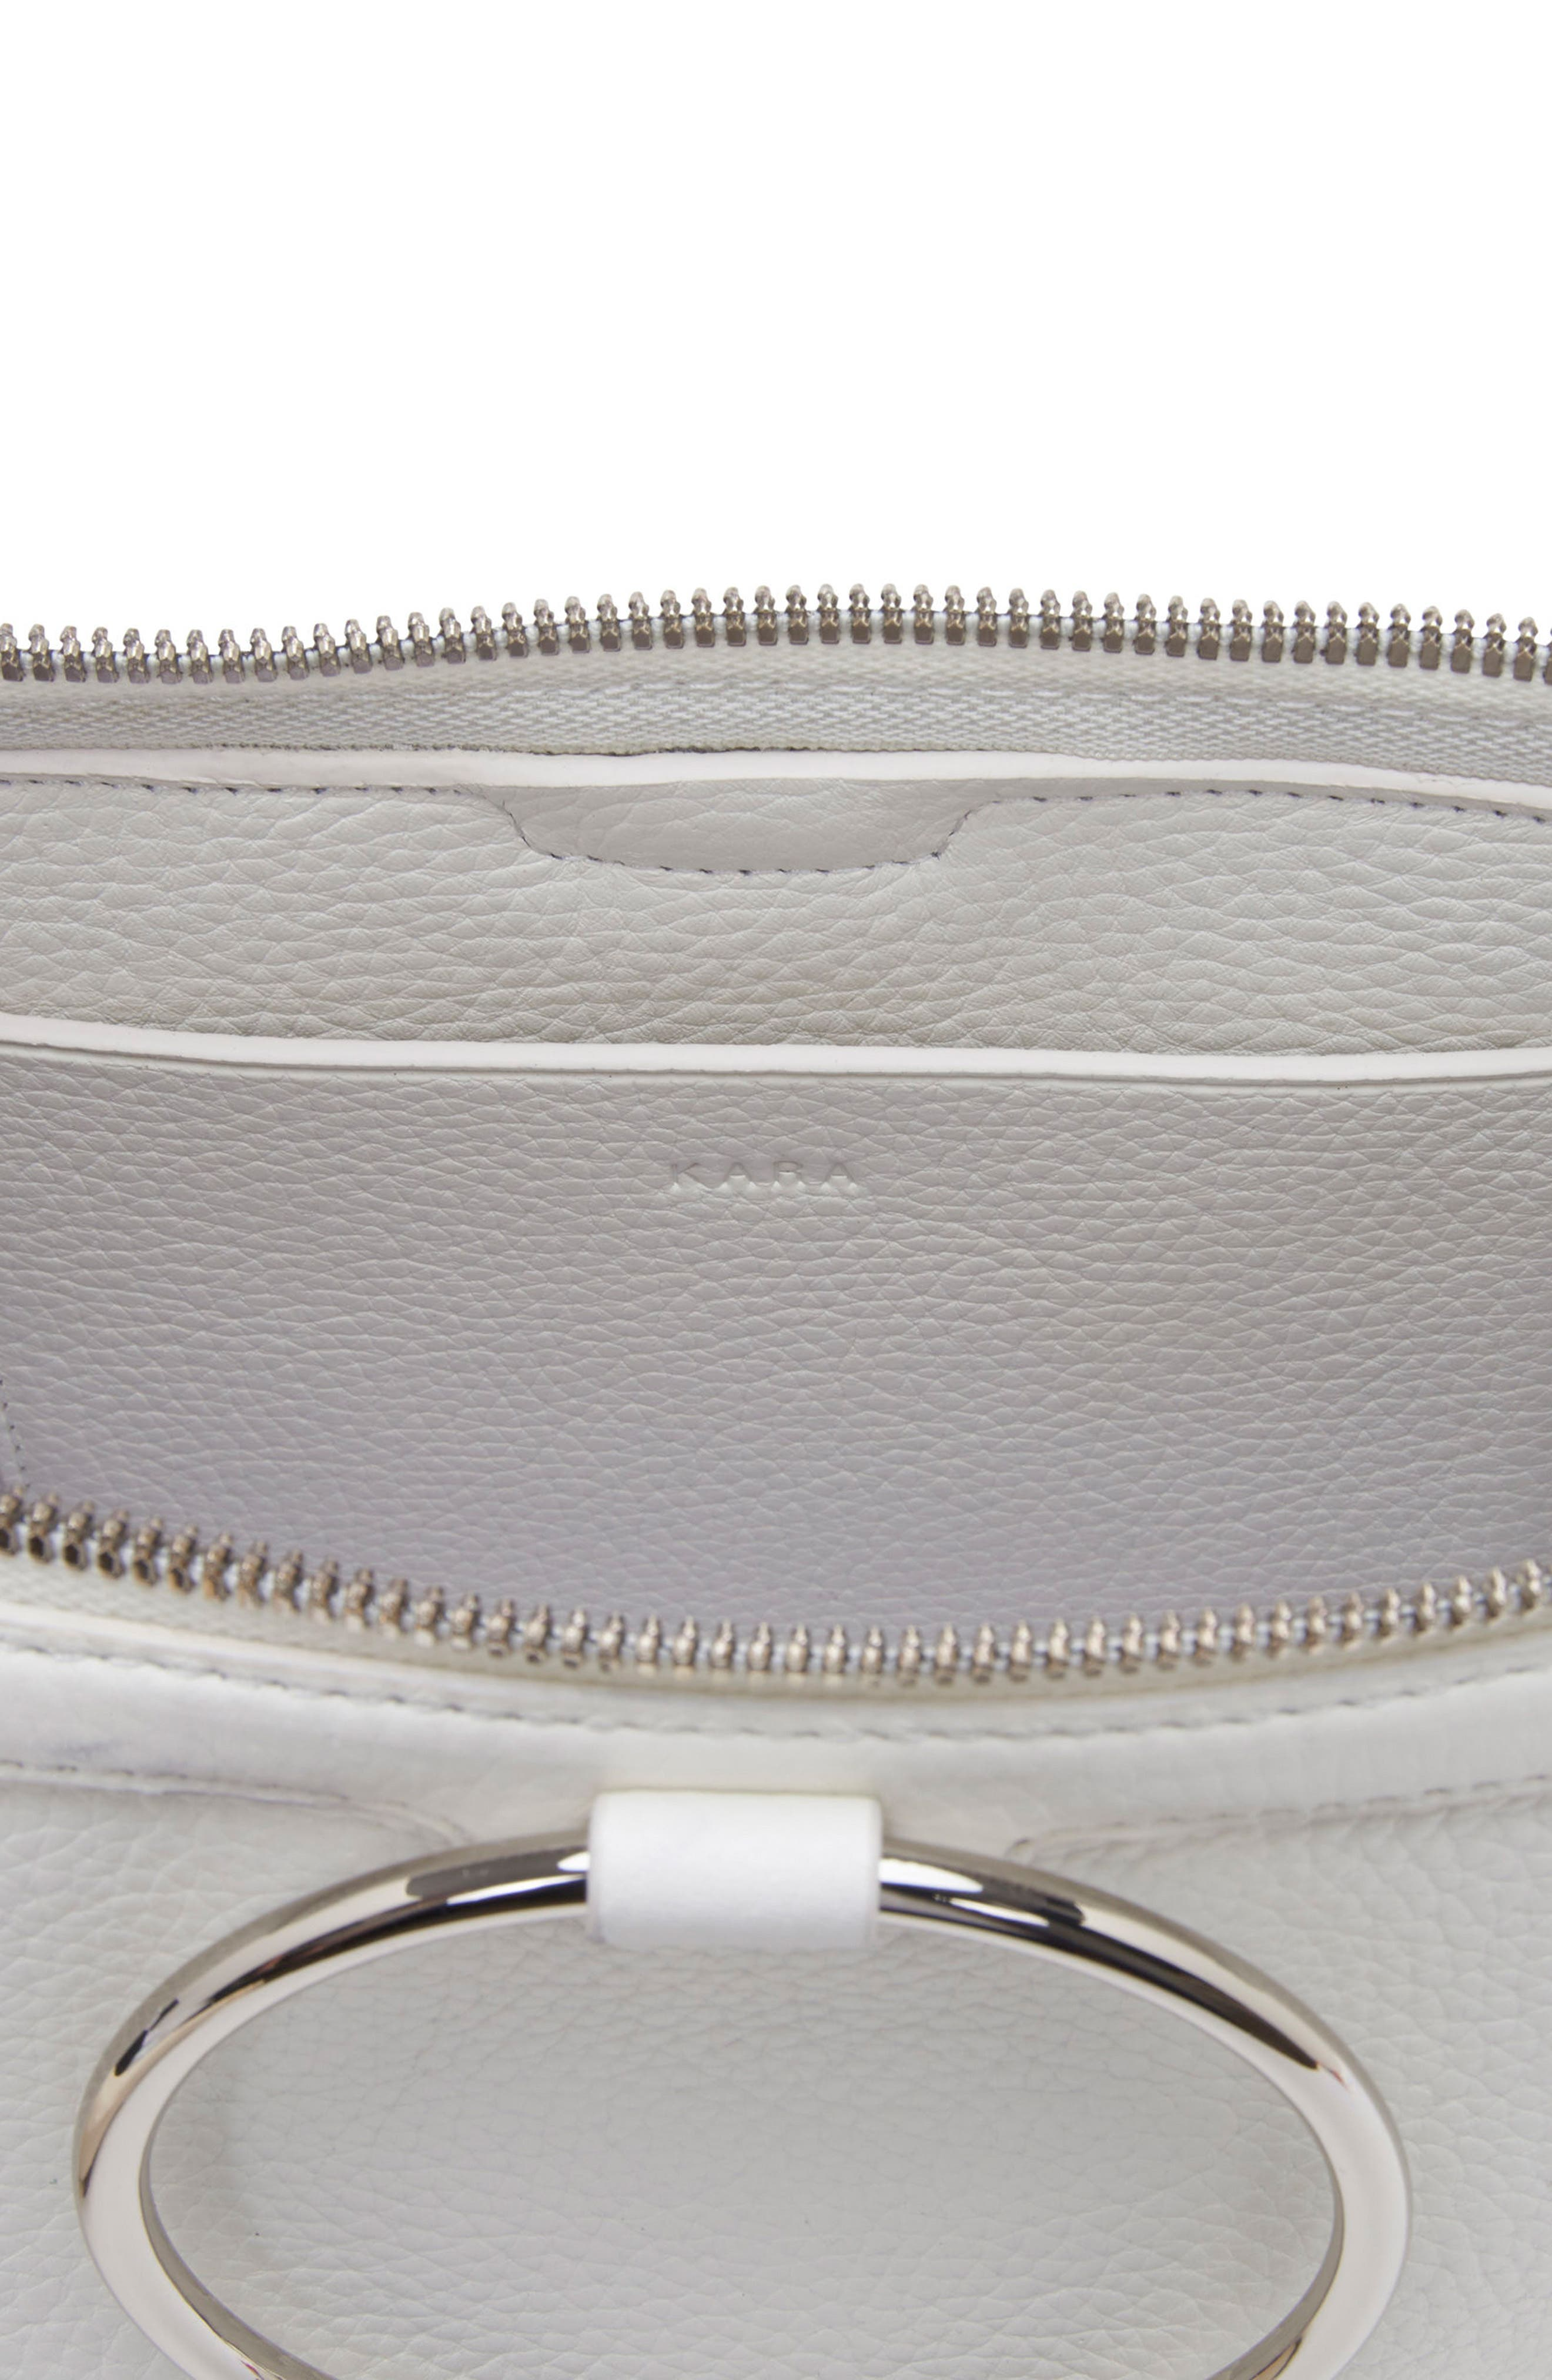 Large Pebbled Leather Ring Clutch,                             Alternate thumbnail 7, color,                             900